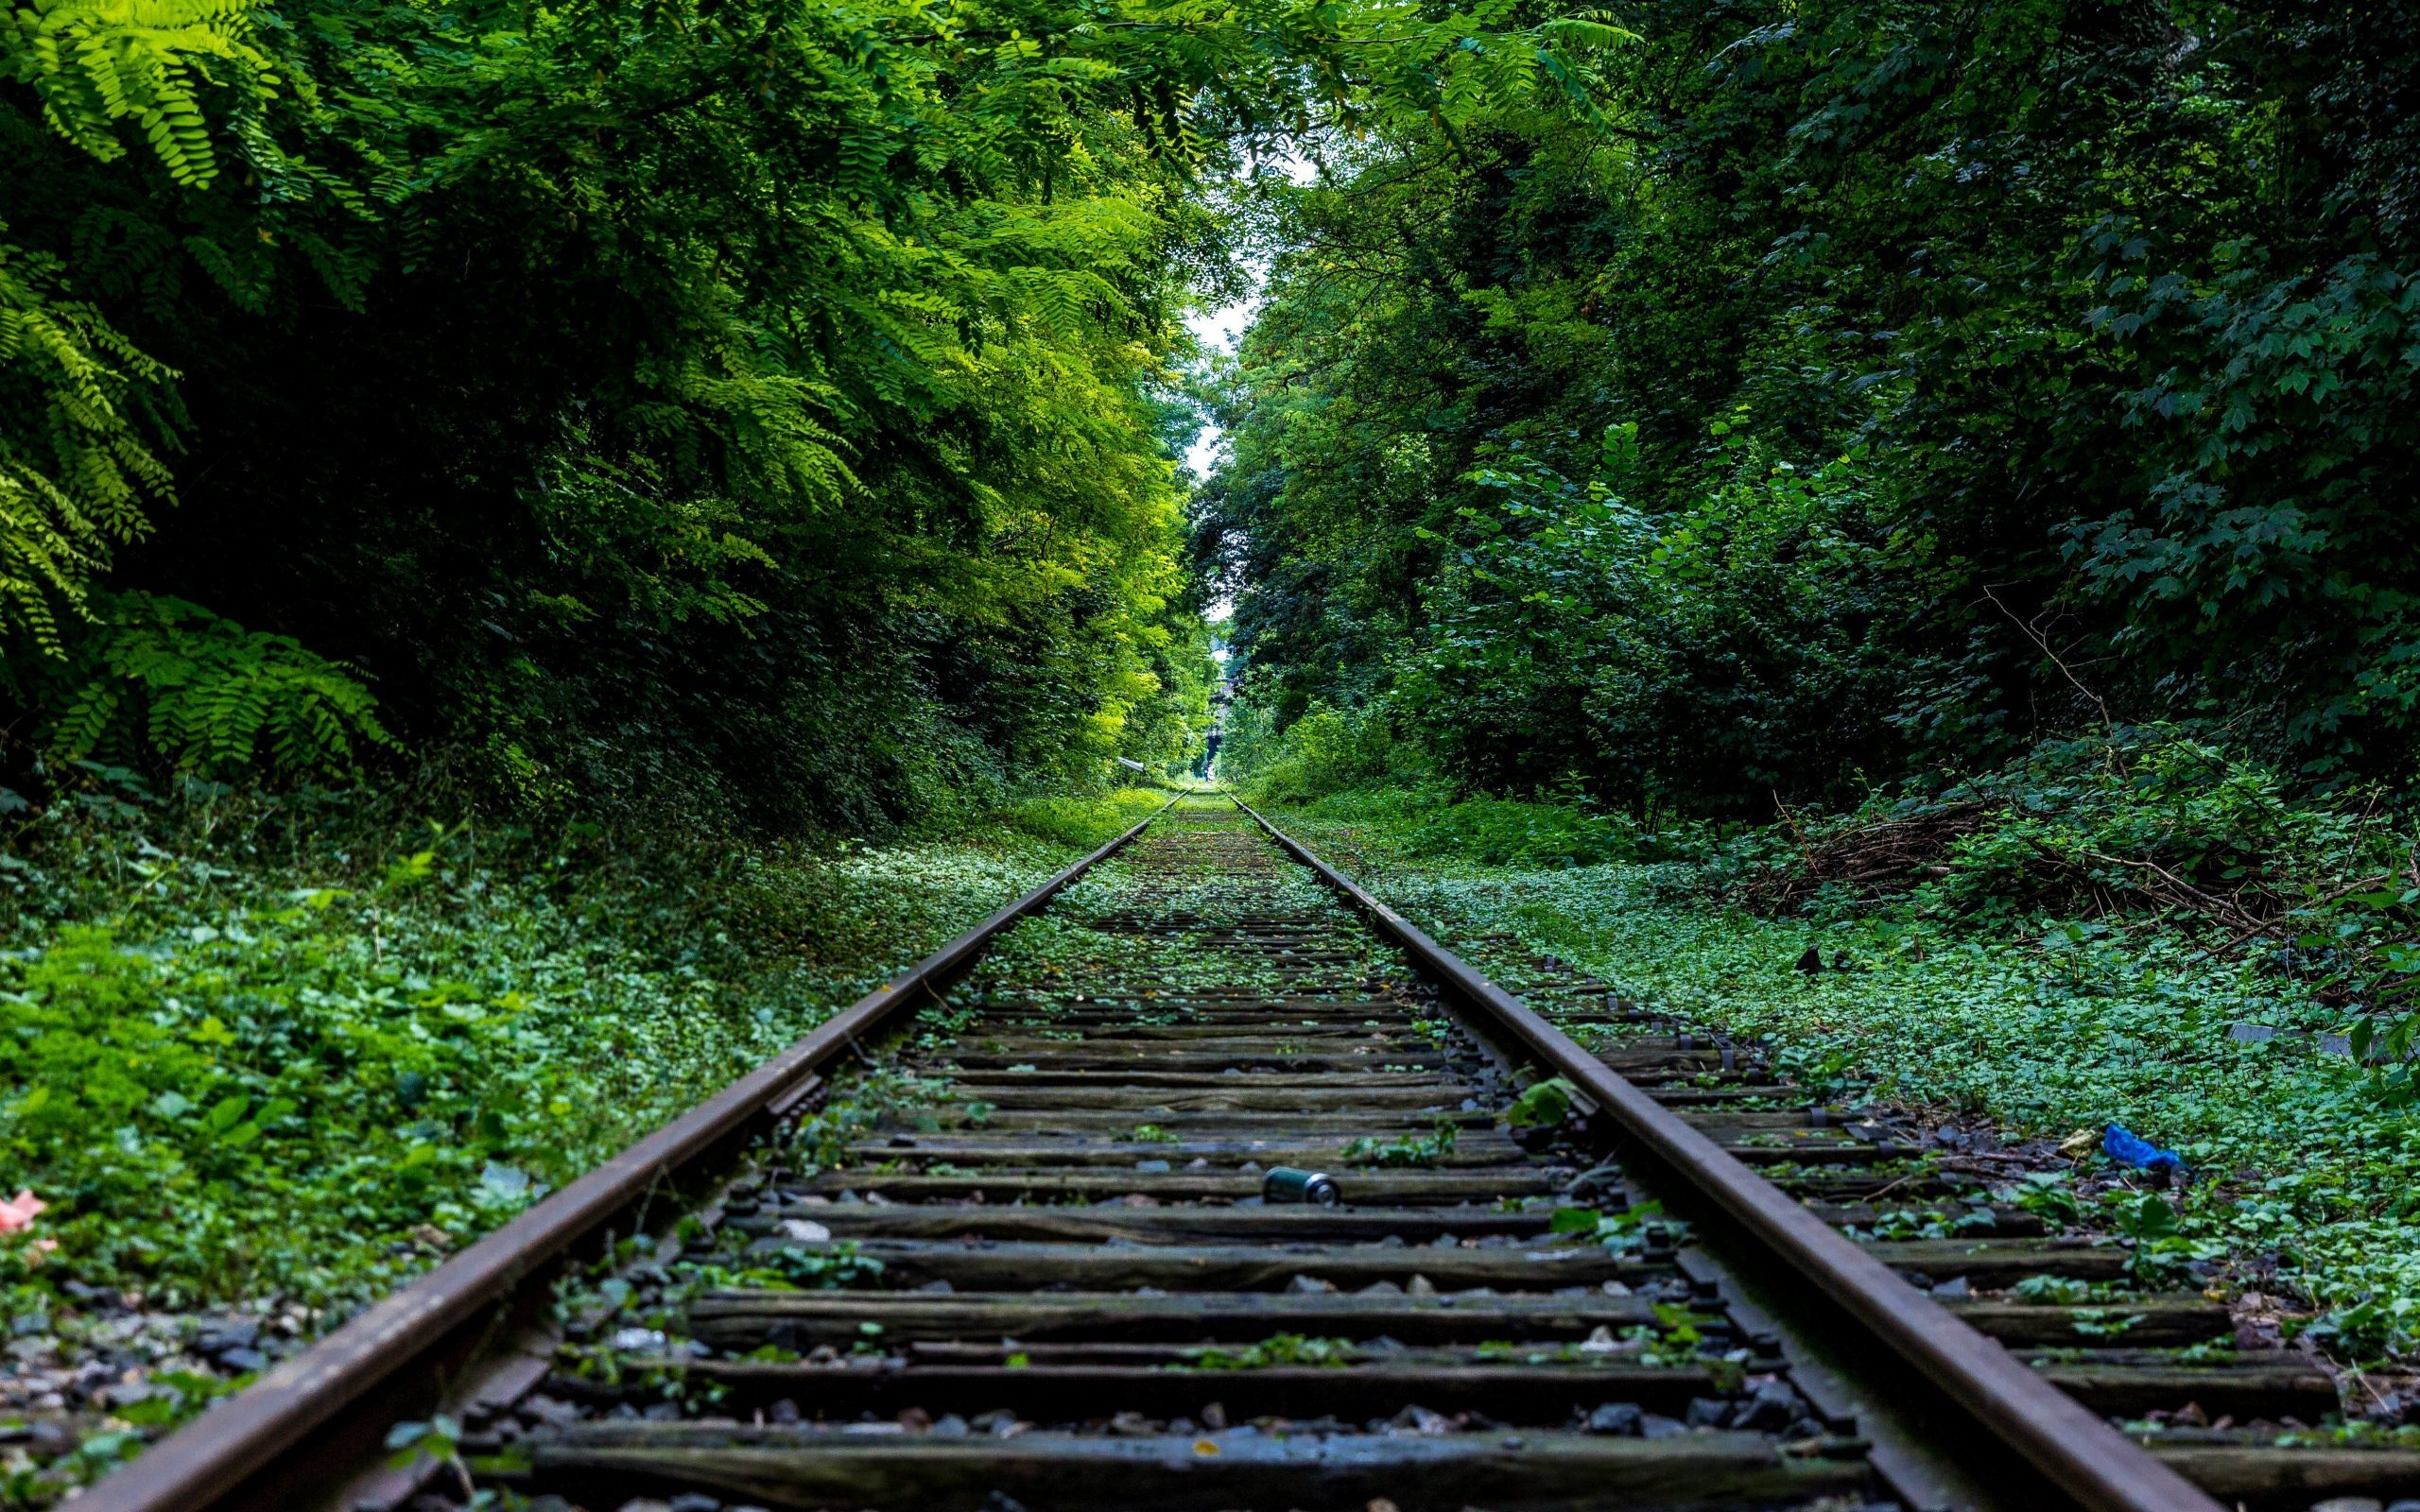 Railtrack in Forest Scenery Wallpaper.